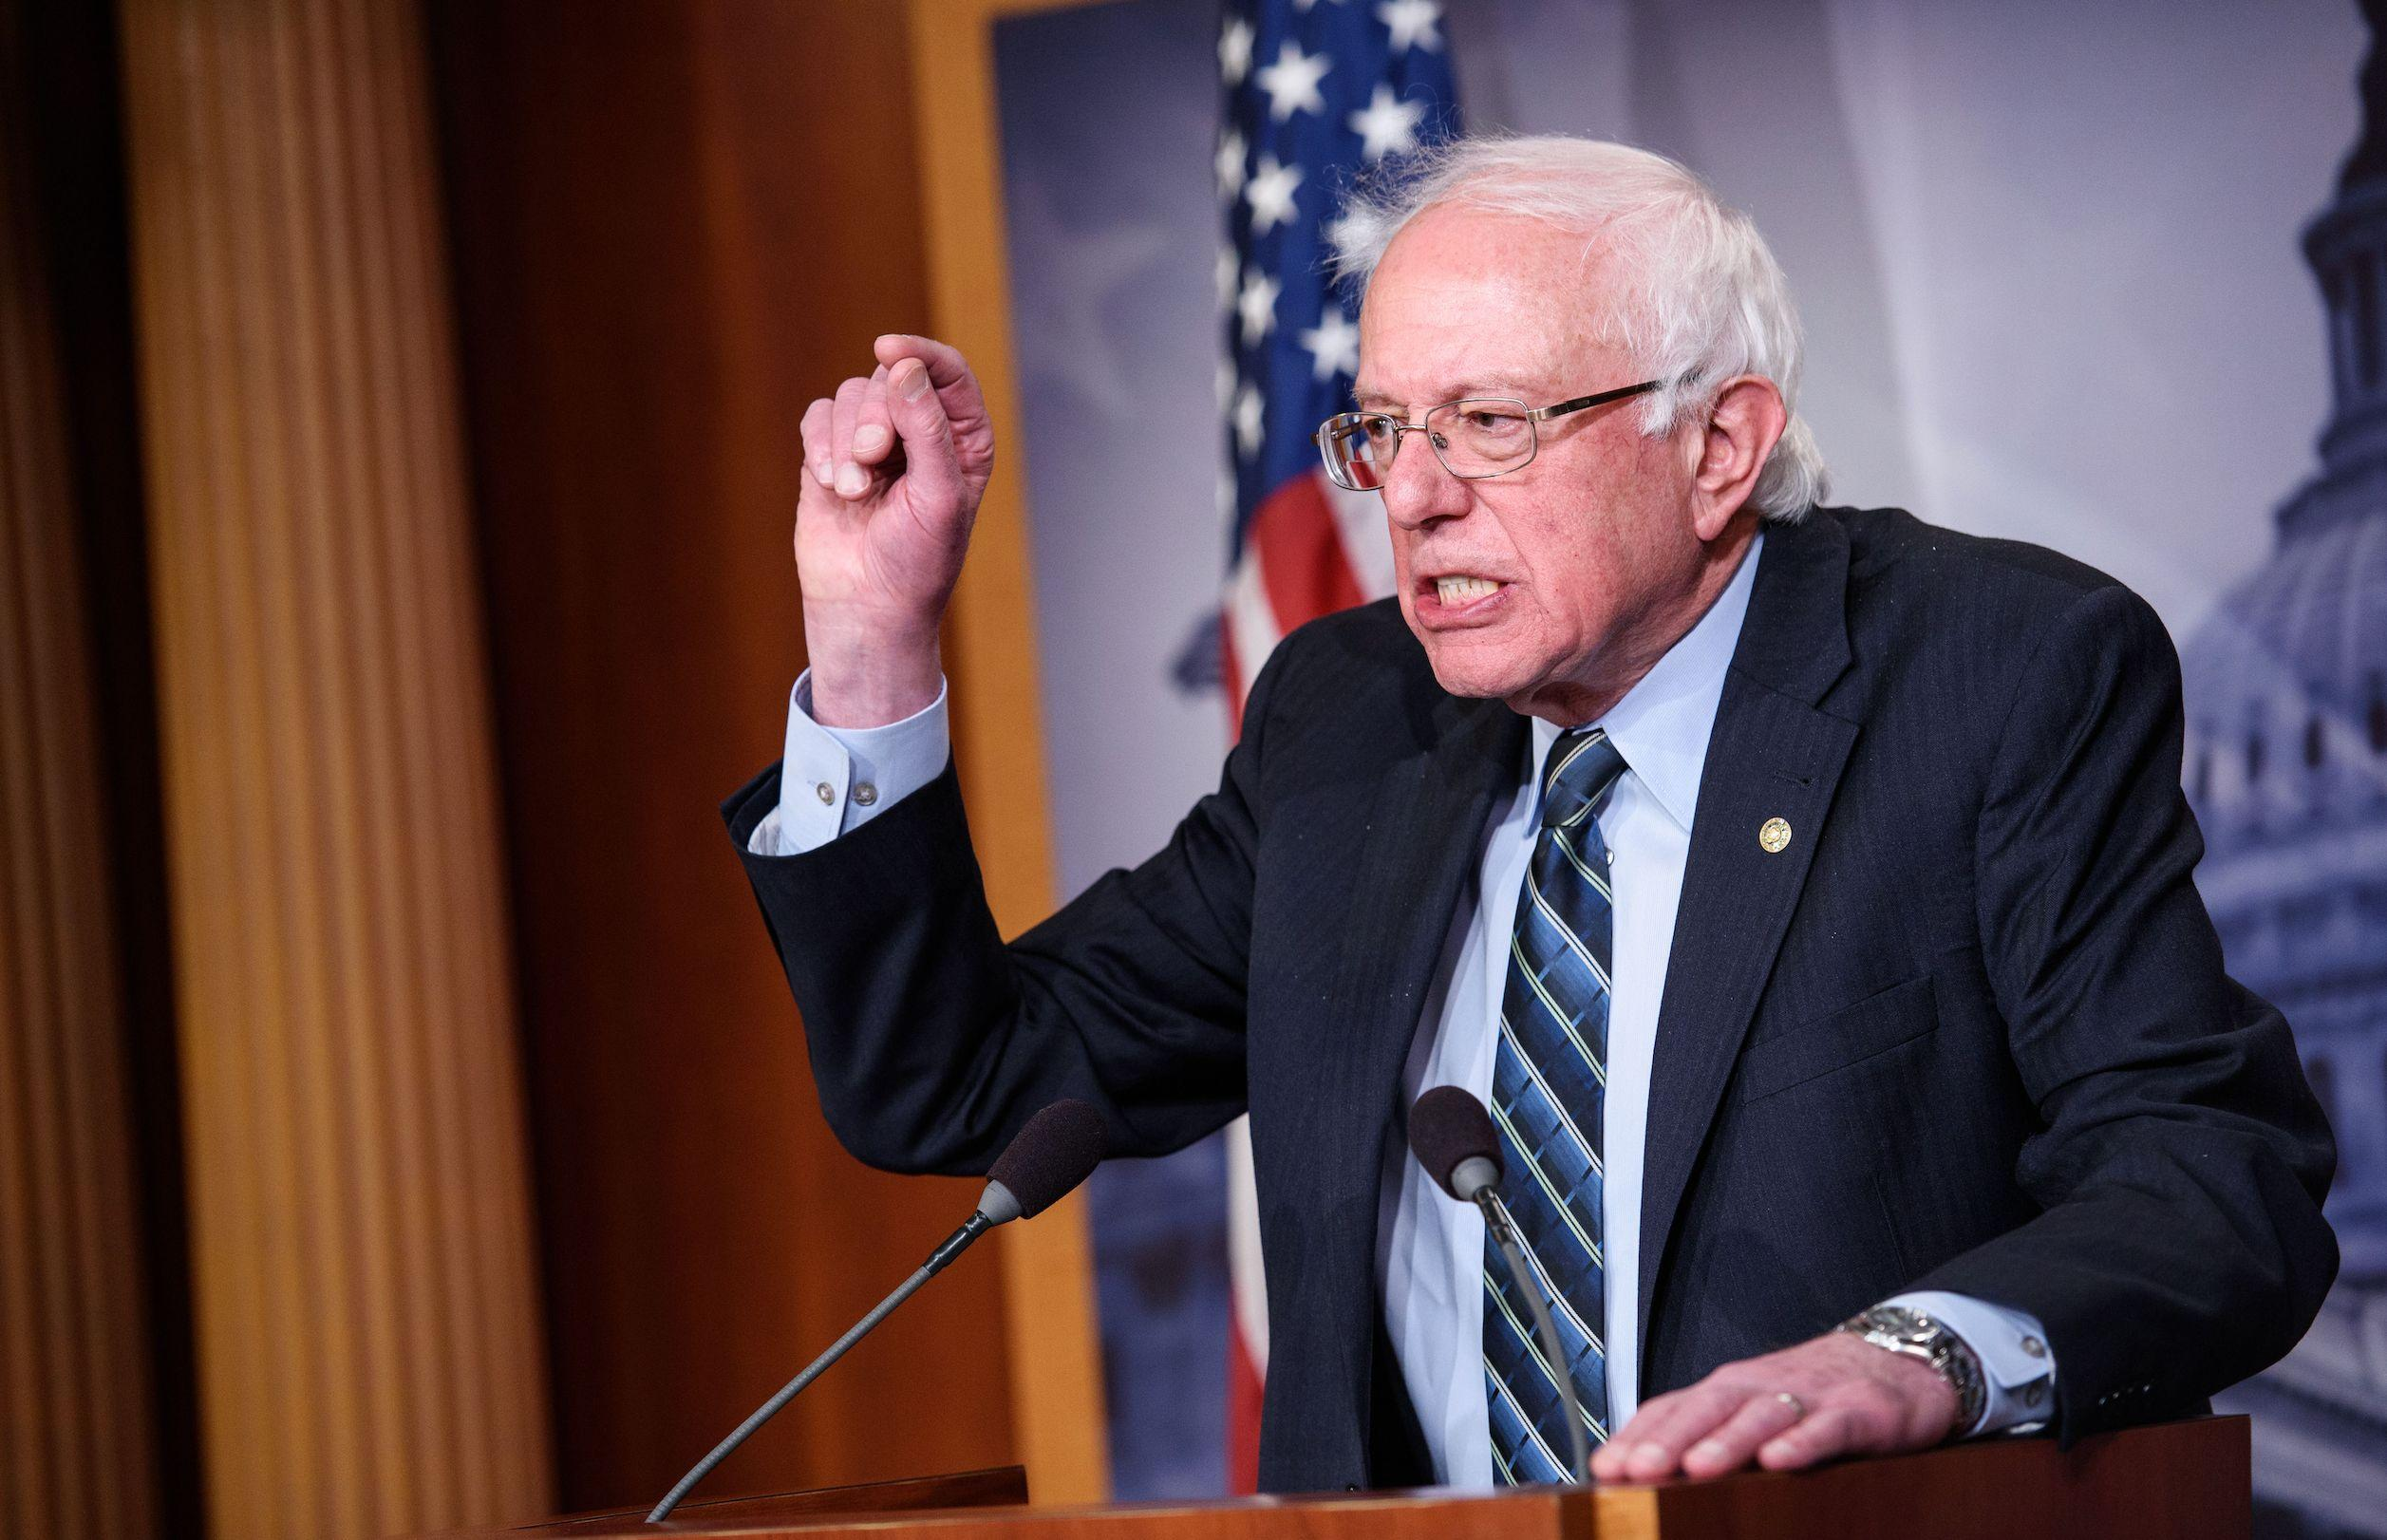 Bernie Sanders slams 'the Trump tax scam' after Ford announces layoffs